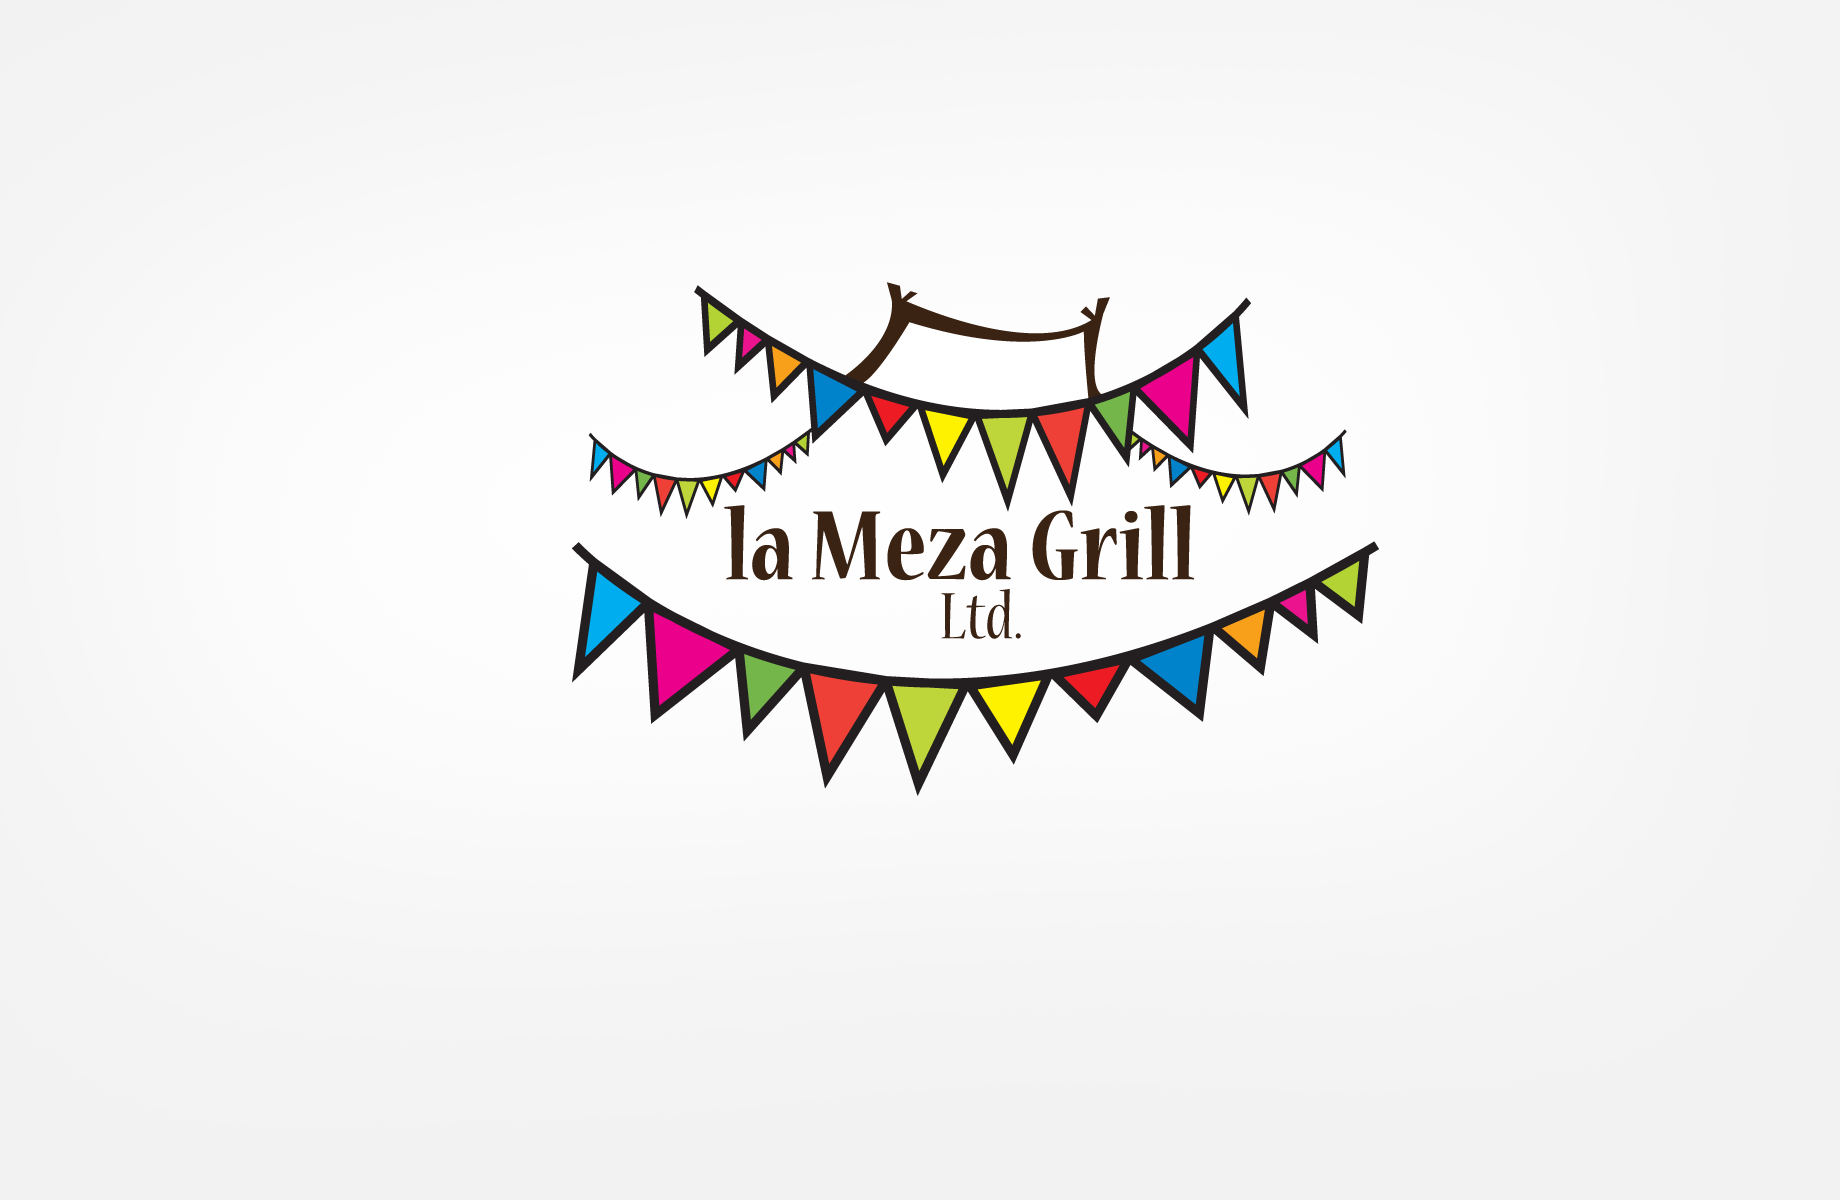 Logo Design by Jan Chua - Entry No. 36 in the Logo Design Contest Inspiring Logo Design for La Meza Grill Ltd..